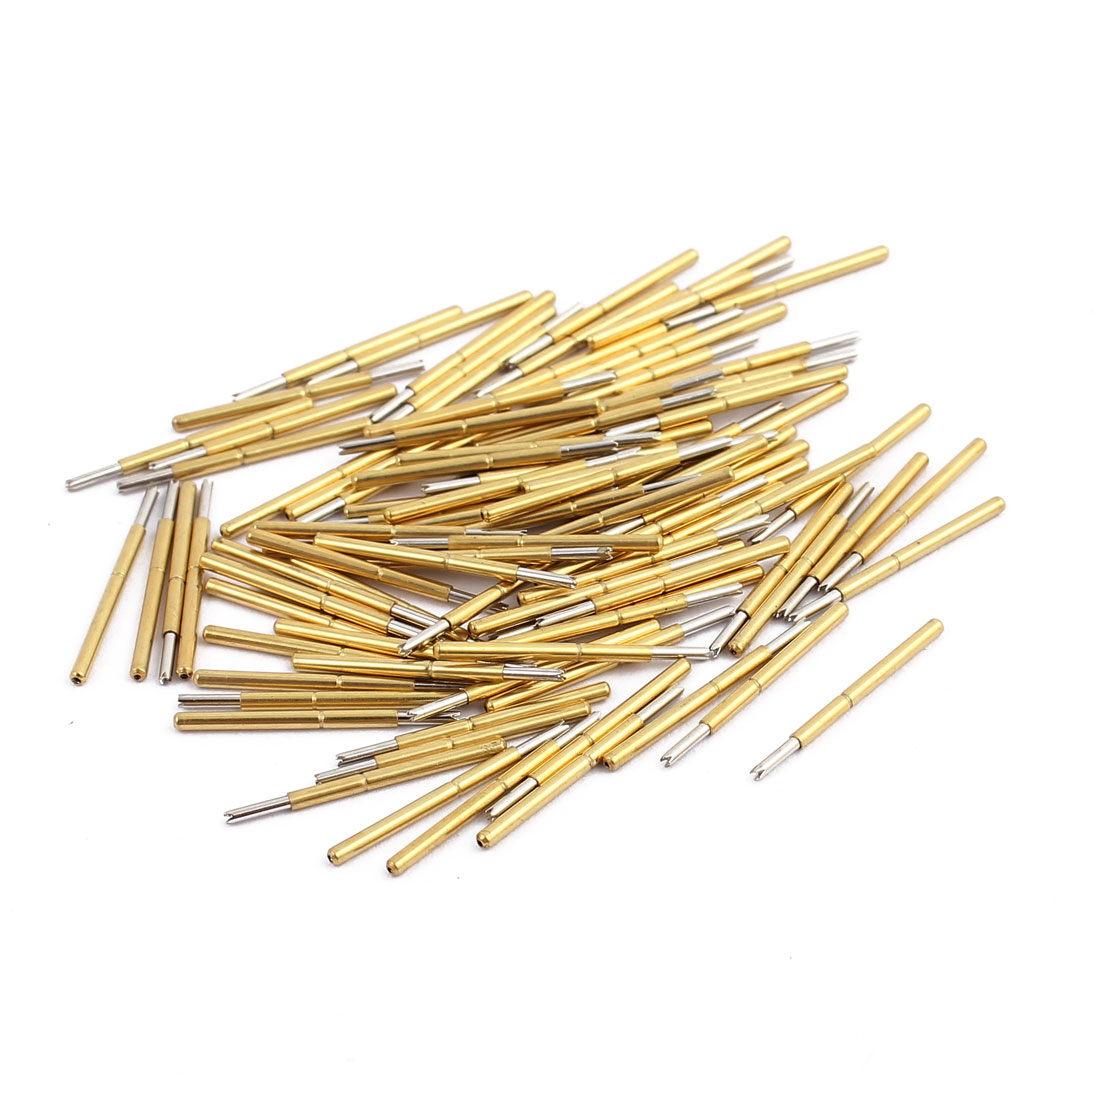 100pcs P75-Q1 1.0mm Dia 16mm Length Metal Spring Pressure Test Probe Needle